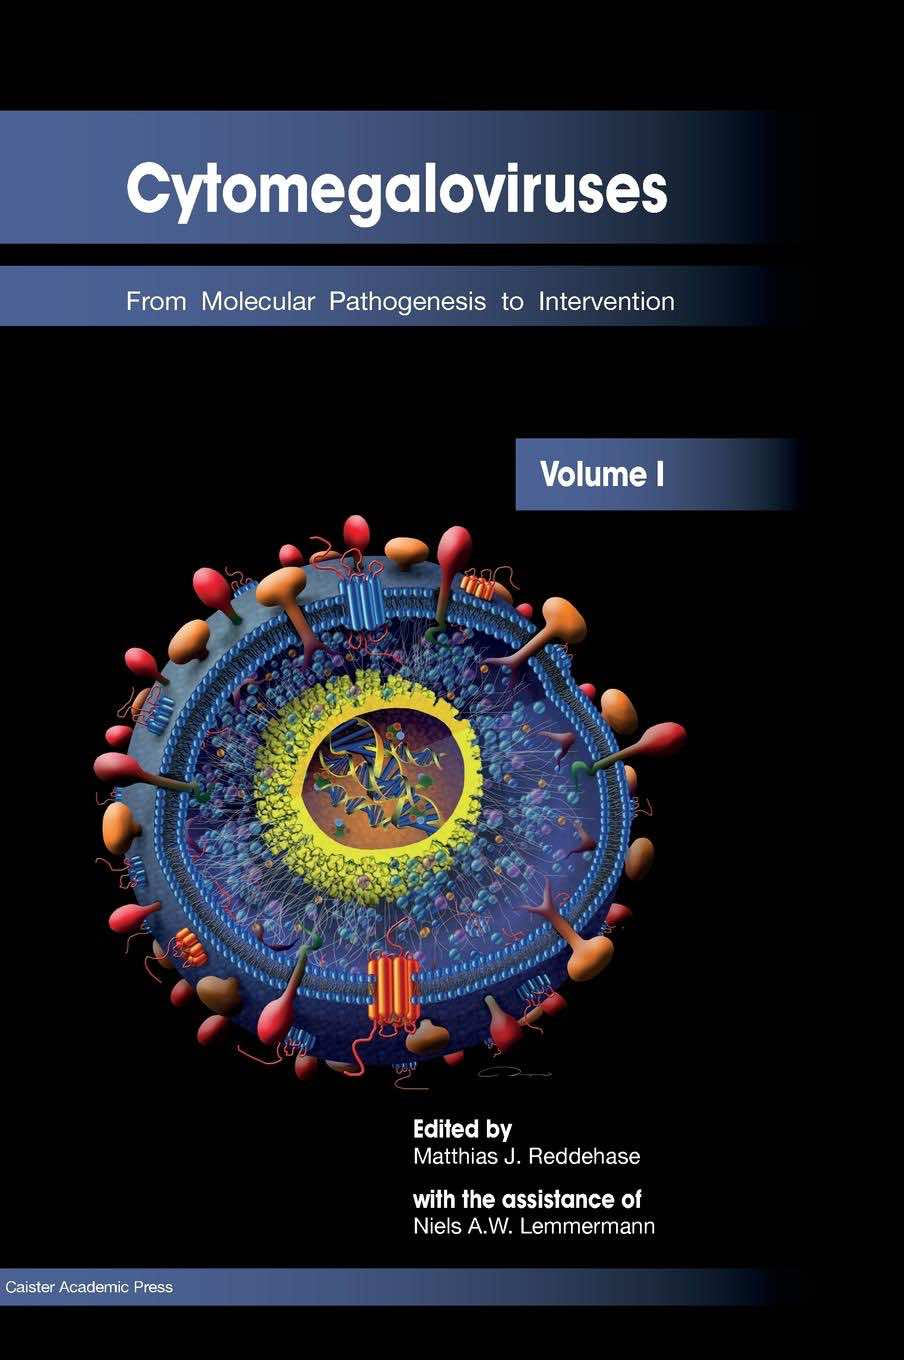 Cytomegaloviruses: From Molecular Pathogenesis to Intervention (Vol. 1)